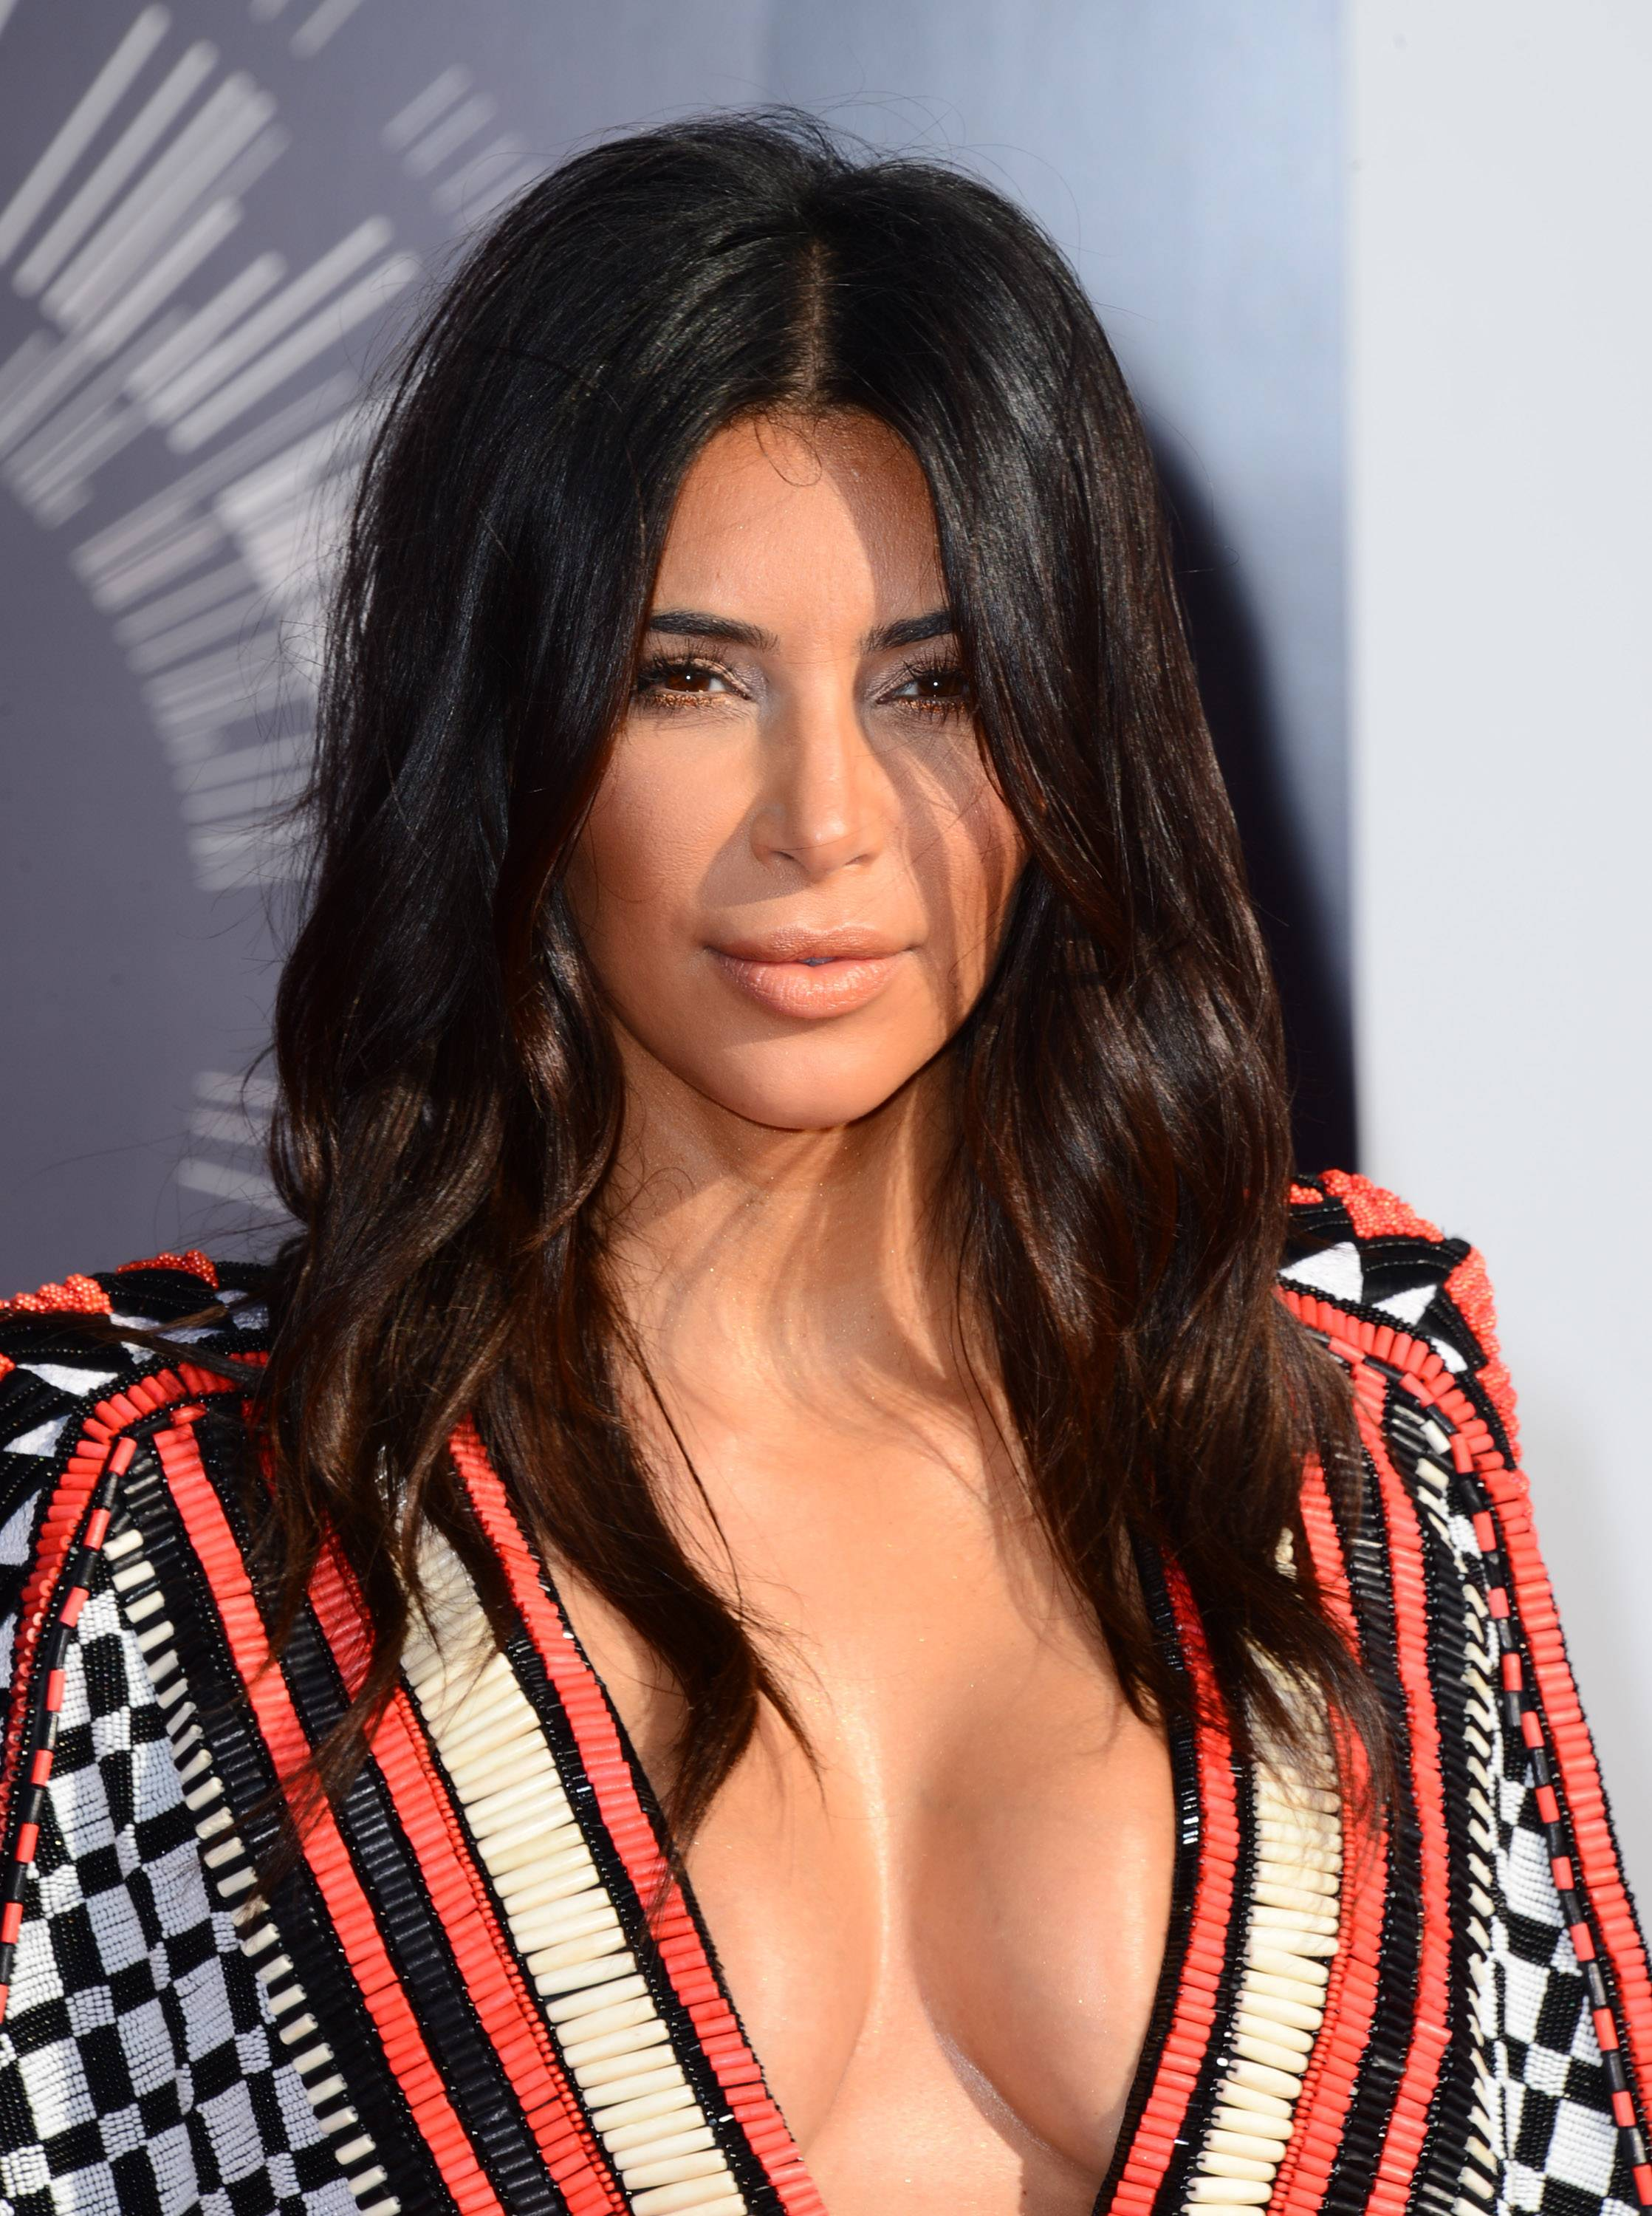 Kim Kardashian, who would later introduce a performance by Sam Smith, arrives at the MTV Video Music Awards.